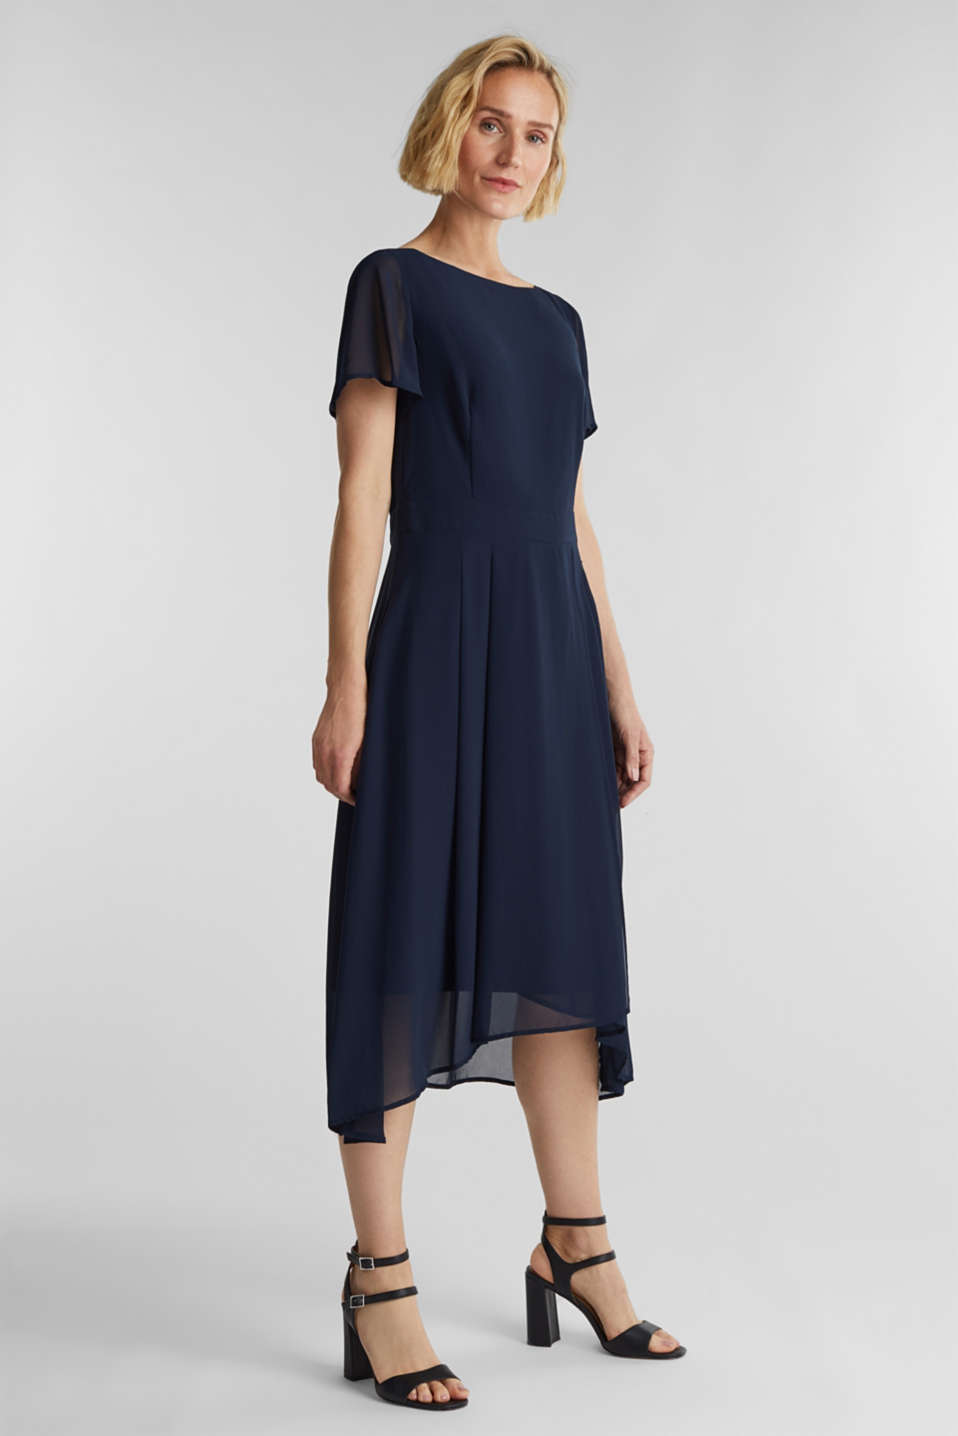 Midi dress in crêpe chiffon, NAVY, detail image number 0